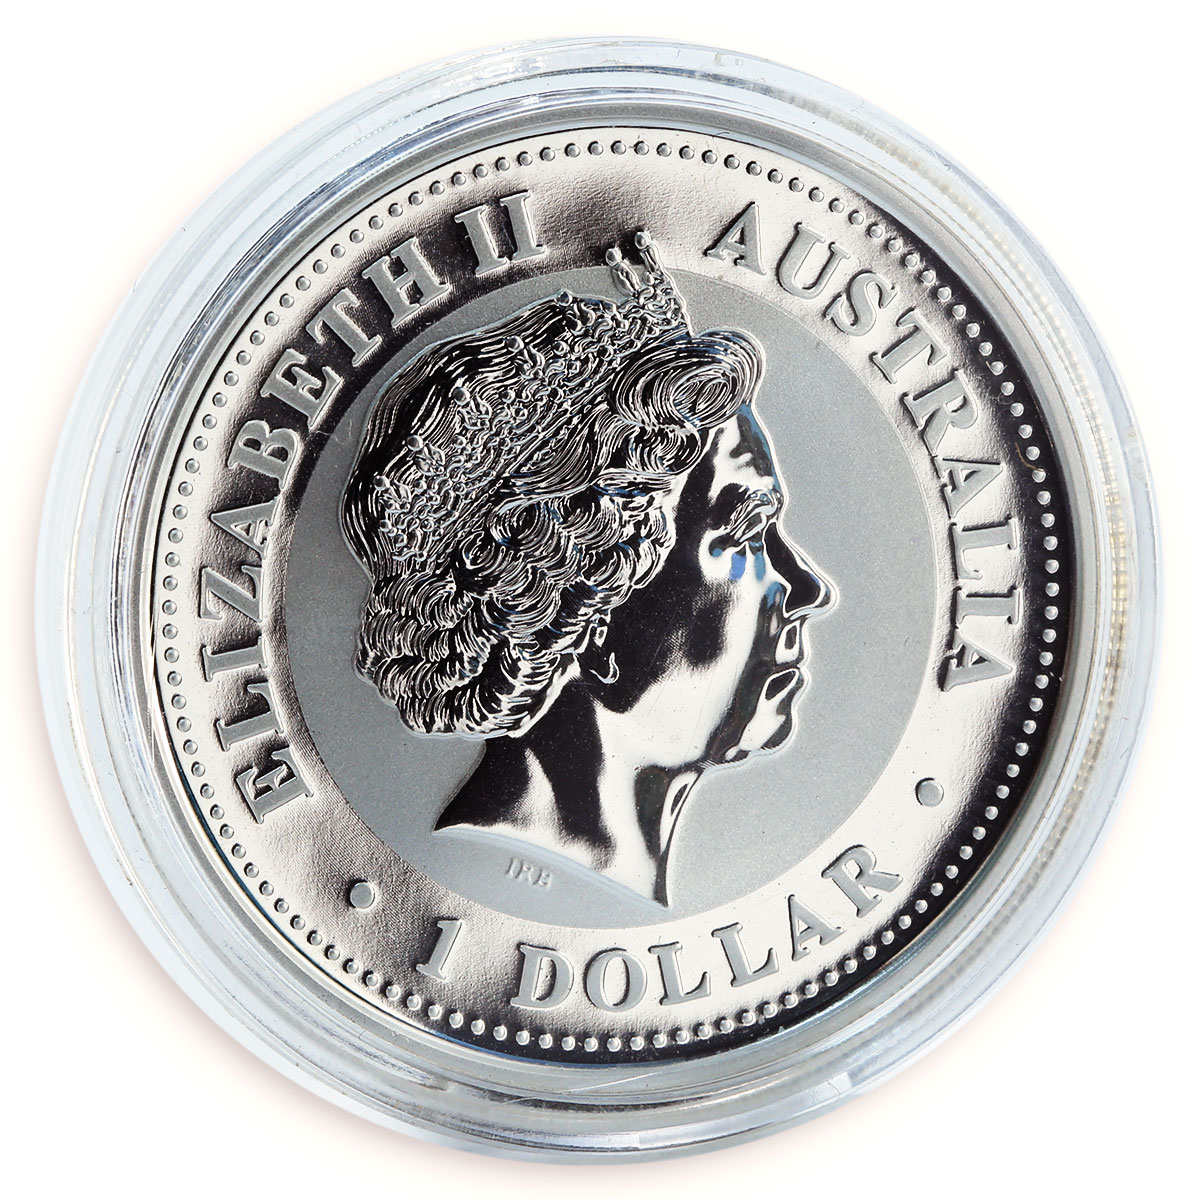 Australia, 1 Dollar, Year of the Horse silver gilded coin 1 oz 2002